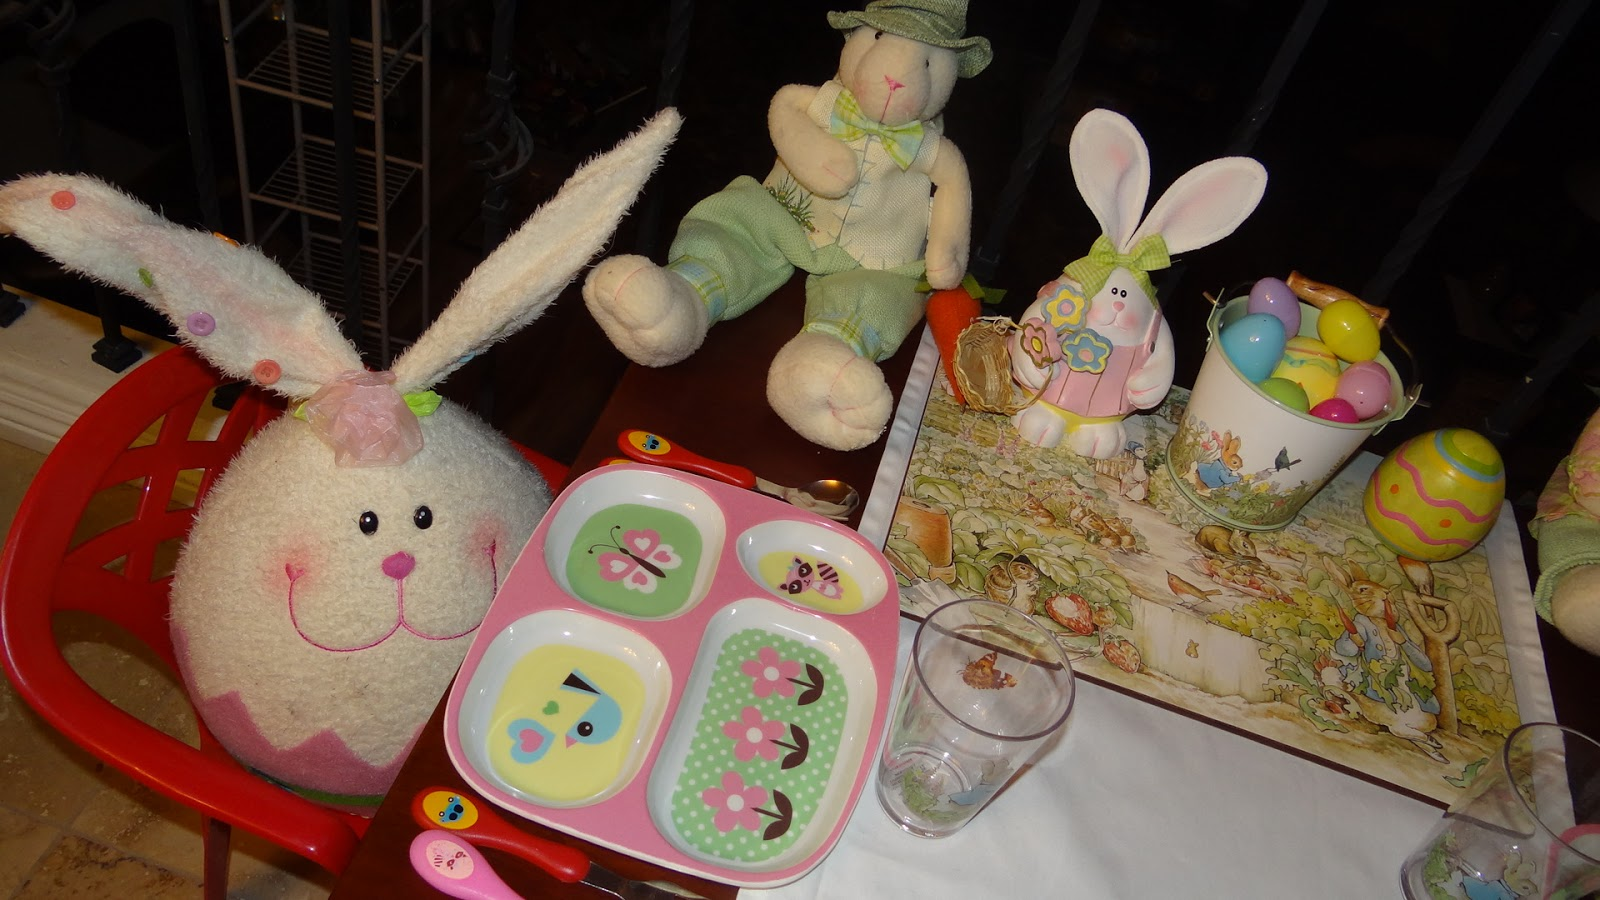 Pattie S Place Easter Decorations And Pottery Barn Kiddie